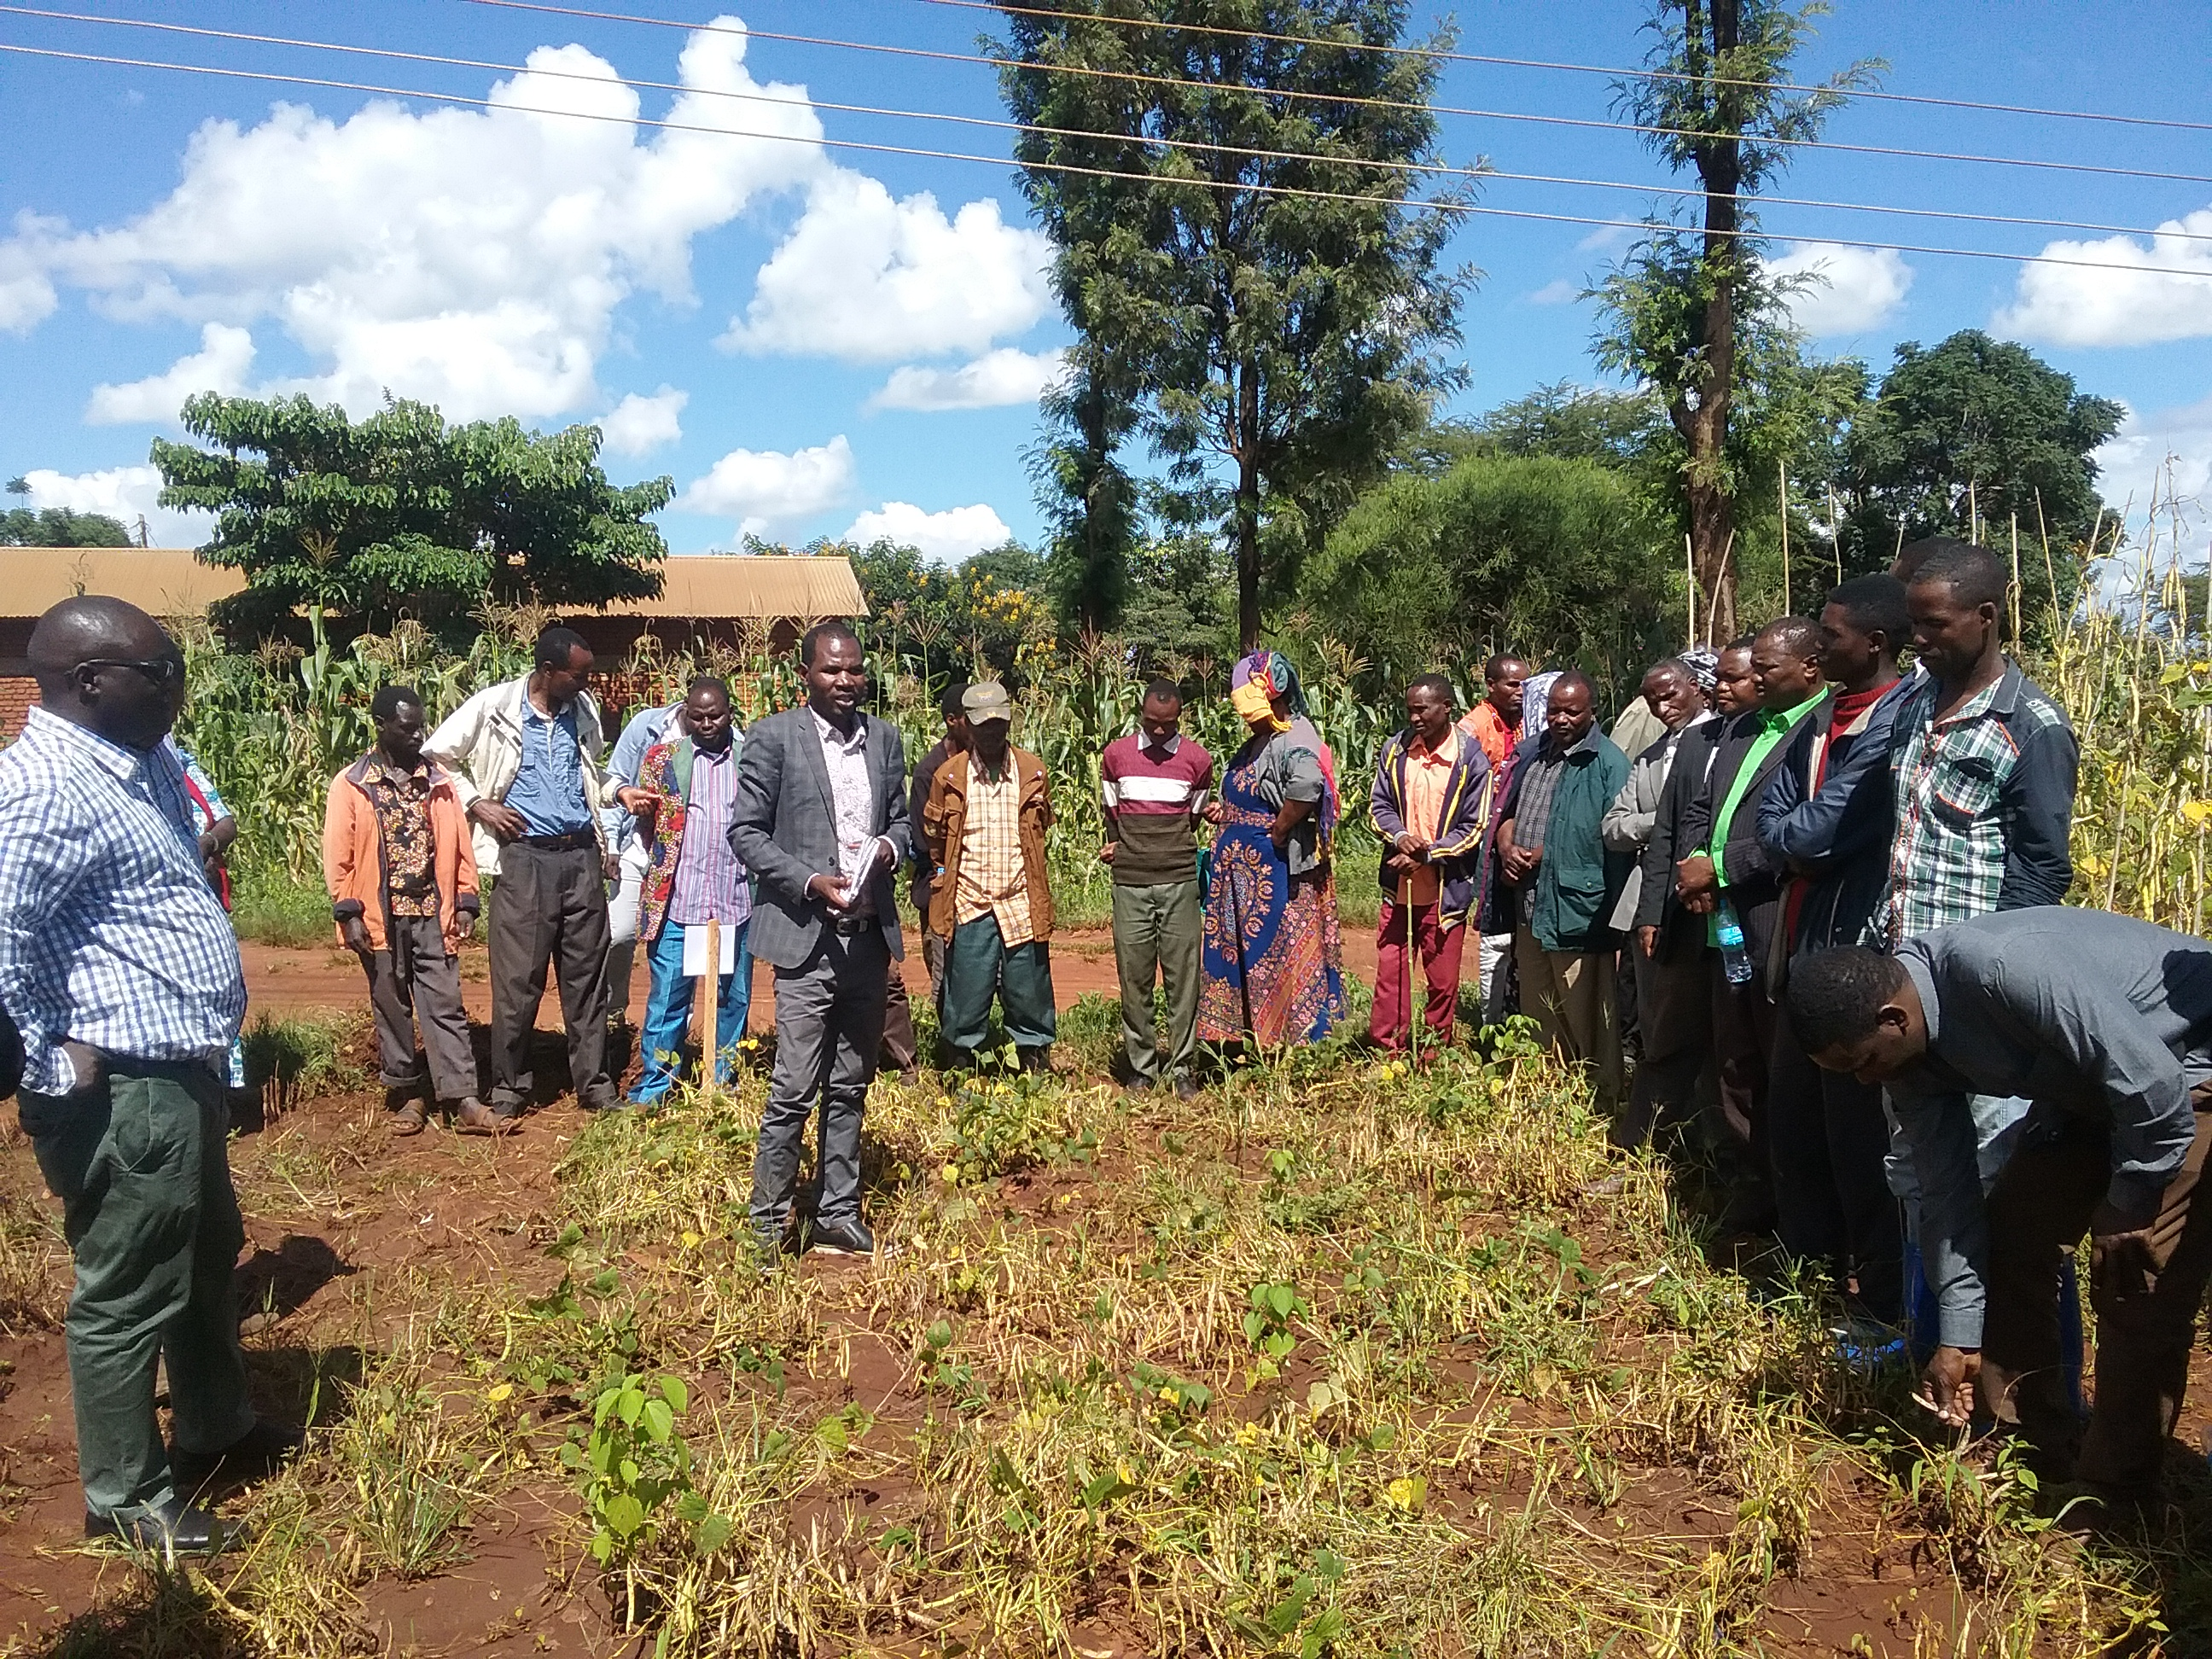 Mr. Nestory Shida, the head of Bean Program at TARI-Selian, giving detailed information on bean varieties developed by TARI-Selian center  during the Farmers Field Day at Hydom,Mbulu District on 01/04/2021